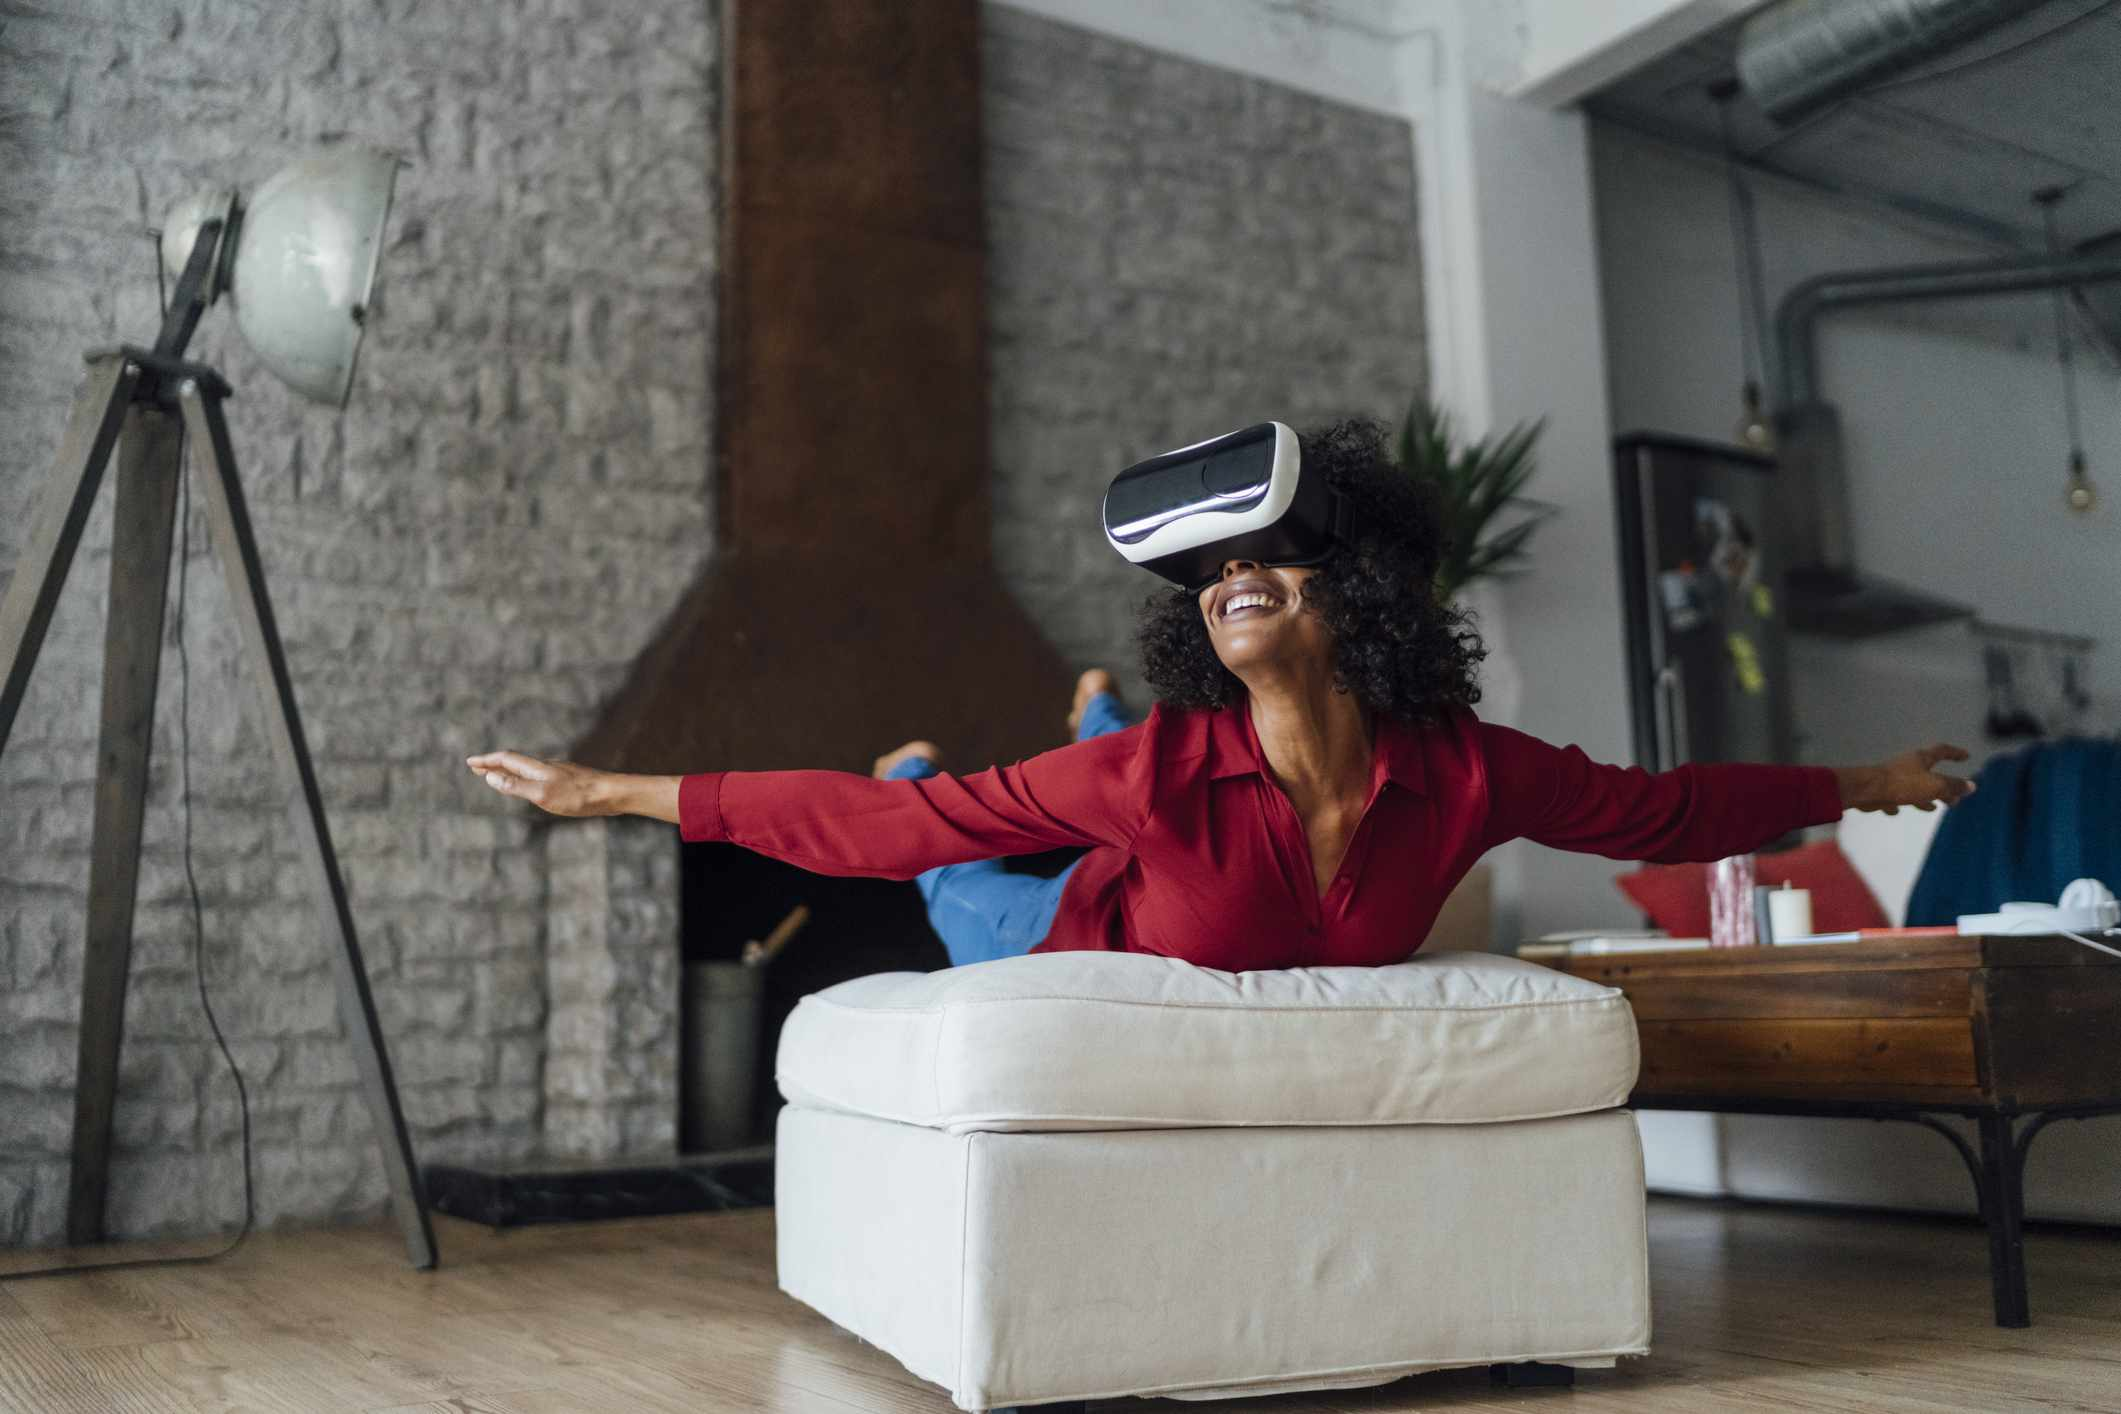 Woman lying on seating furniture, wearing VR goggles, pretending to fly